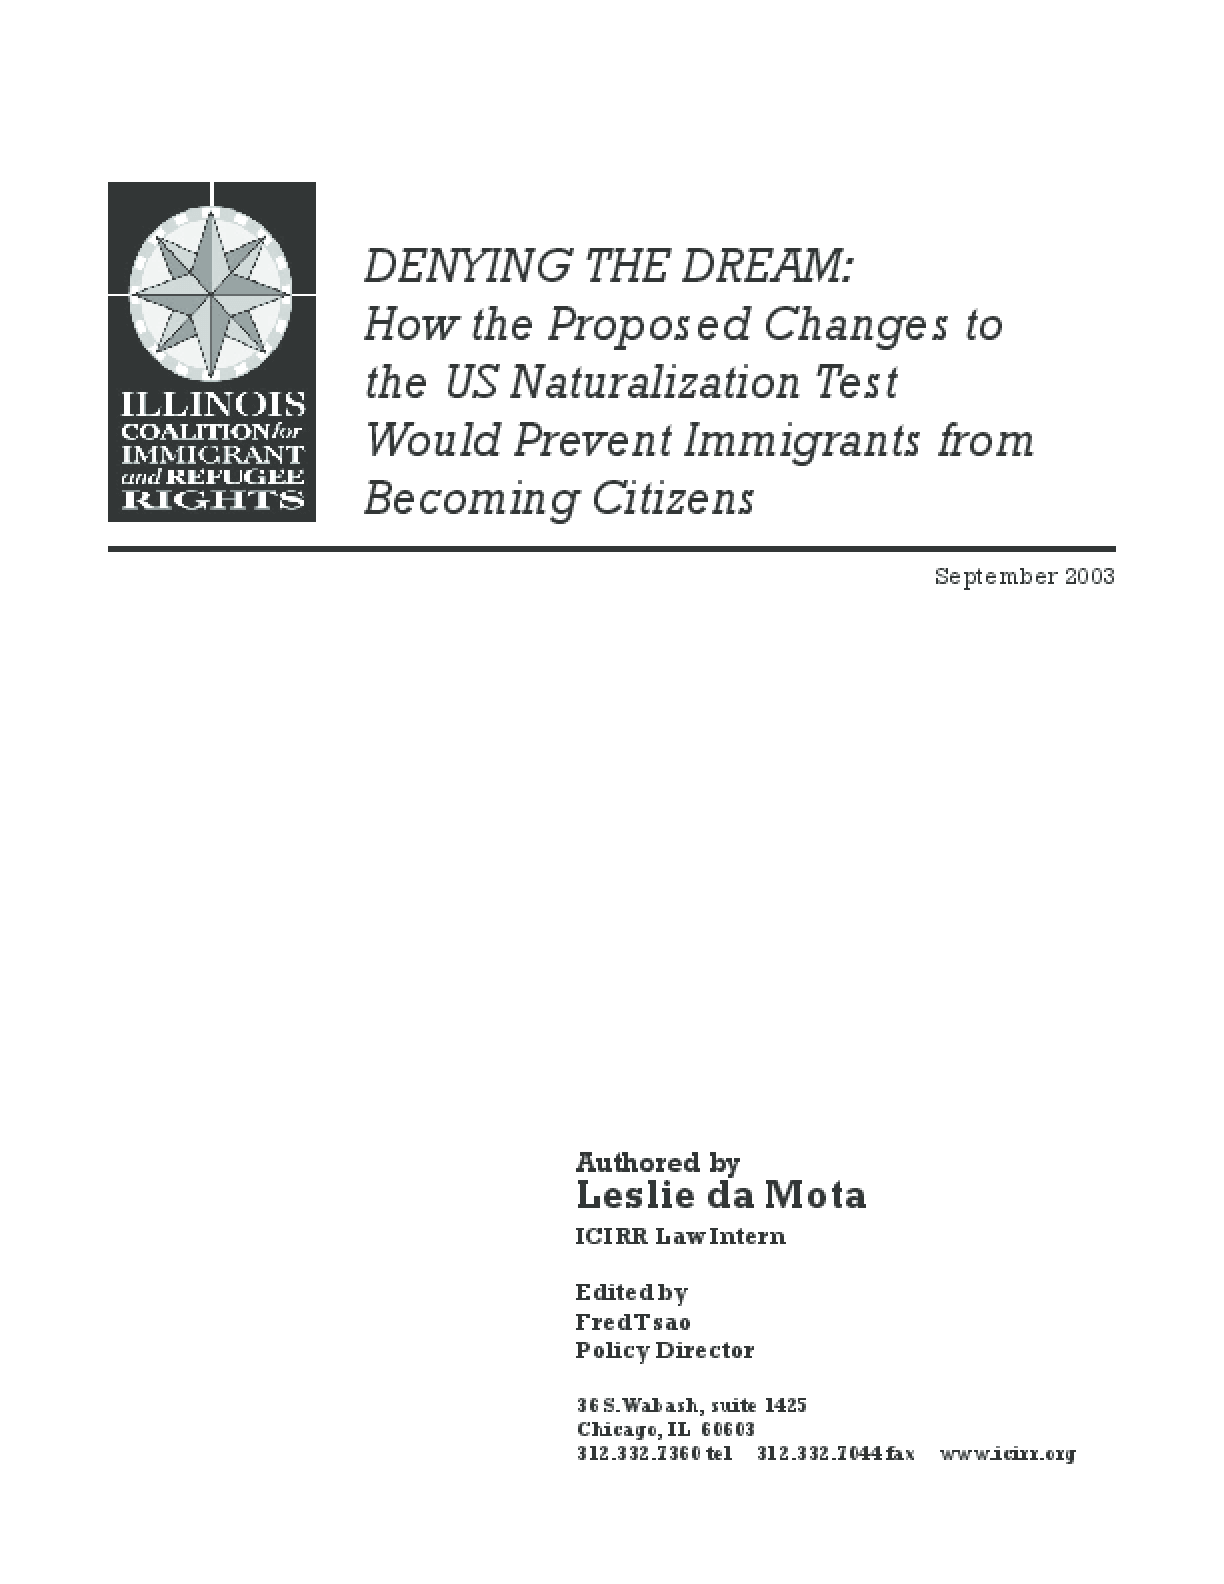 Denying the Dream: How the Proposed Changes to the US Naturalization Test Would Prevent Immigrants from Becoming Citizens